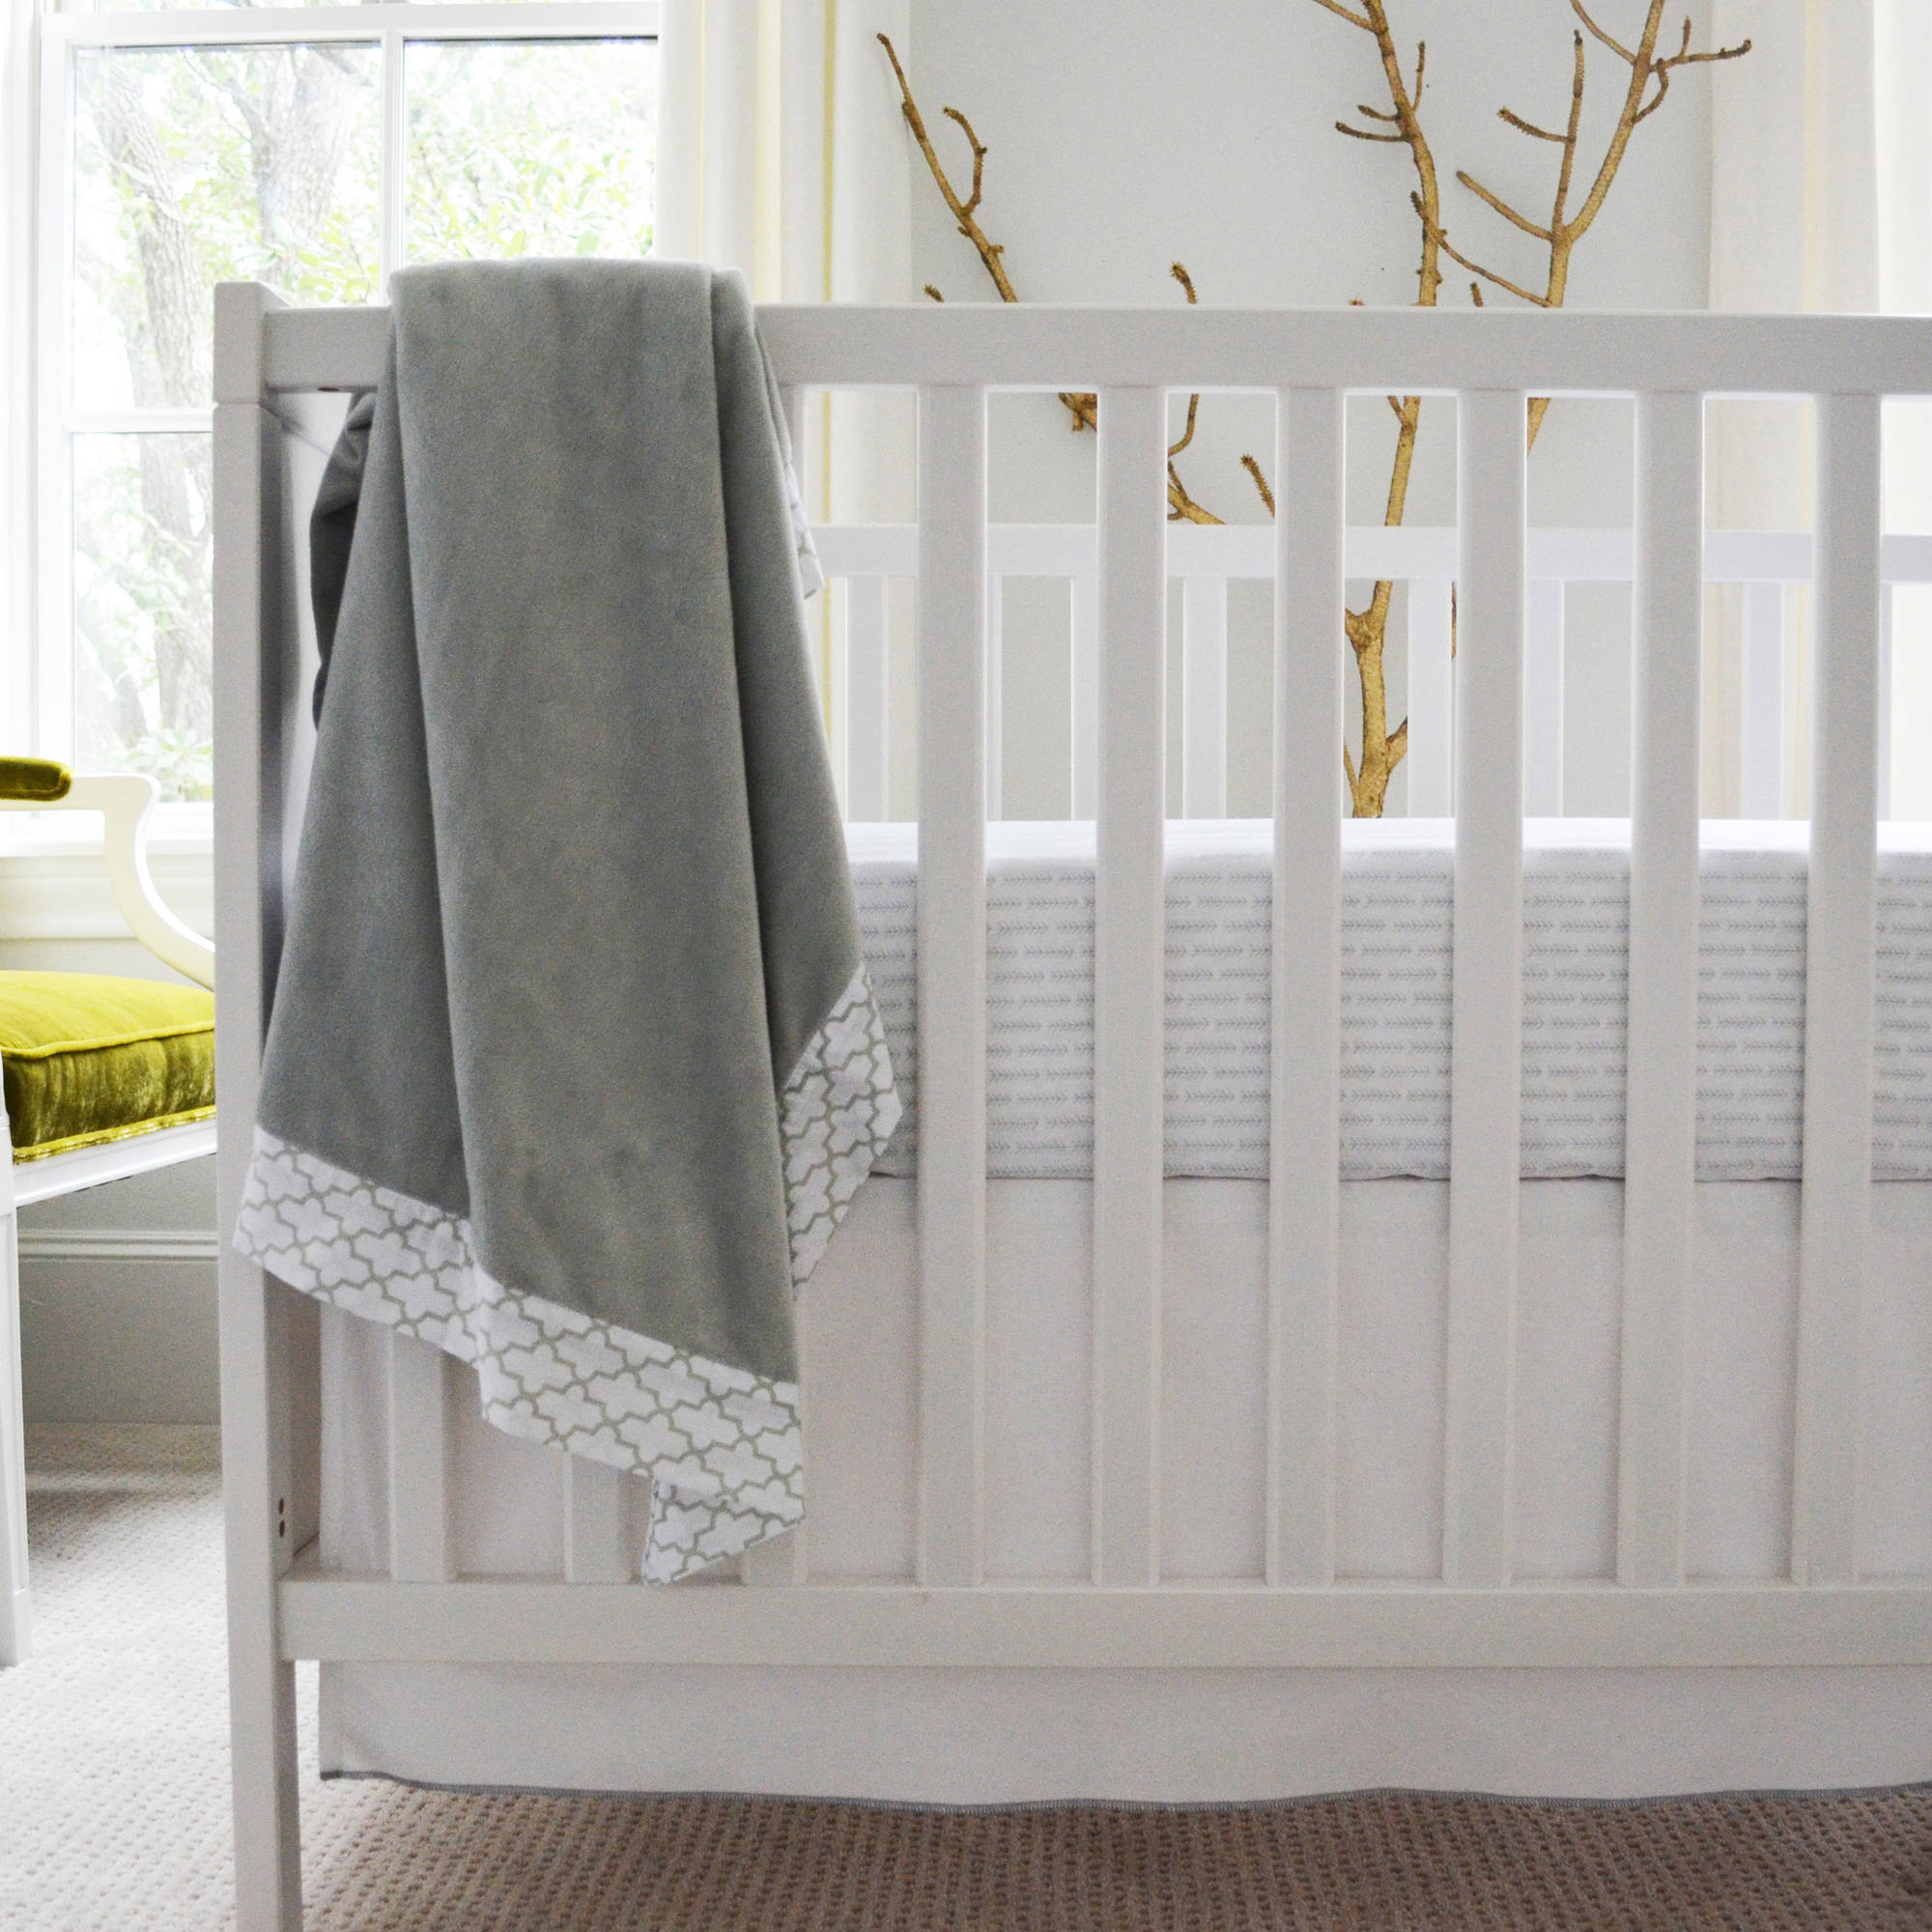 Owen & Ozzie 2-Piece Crib Bedding Set, Grey